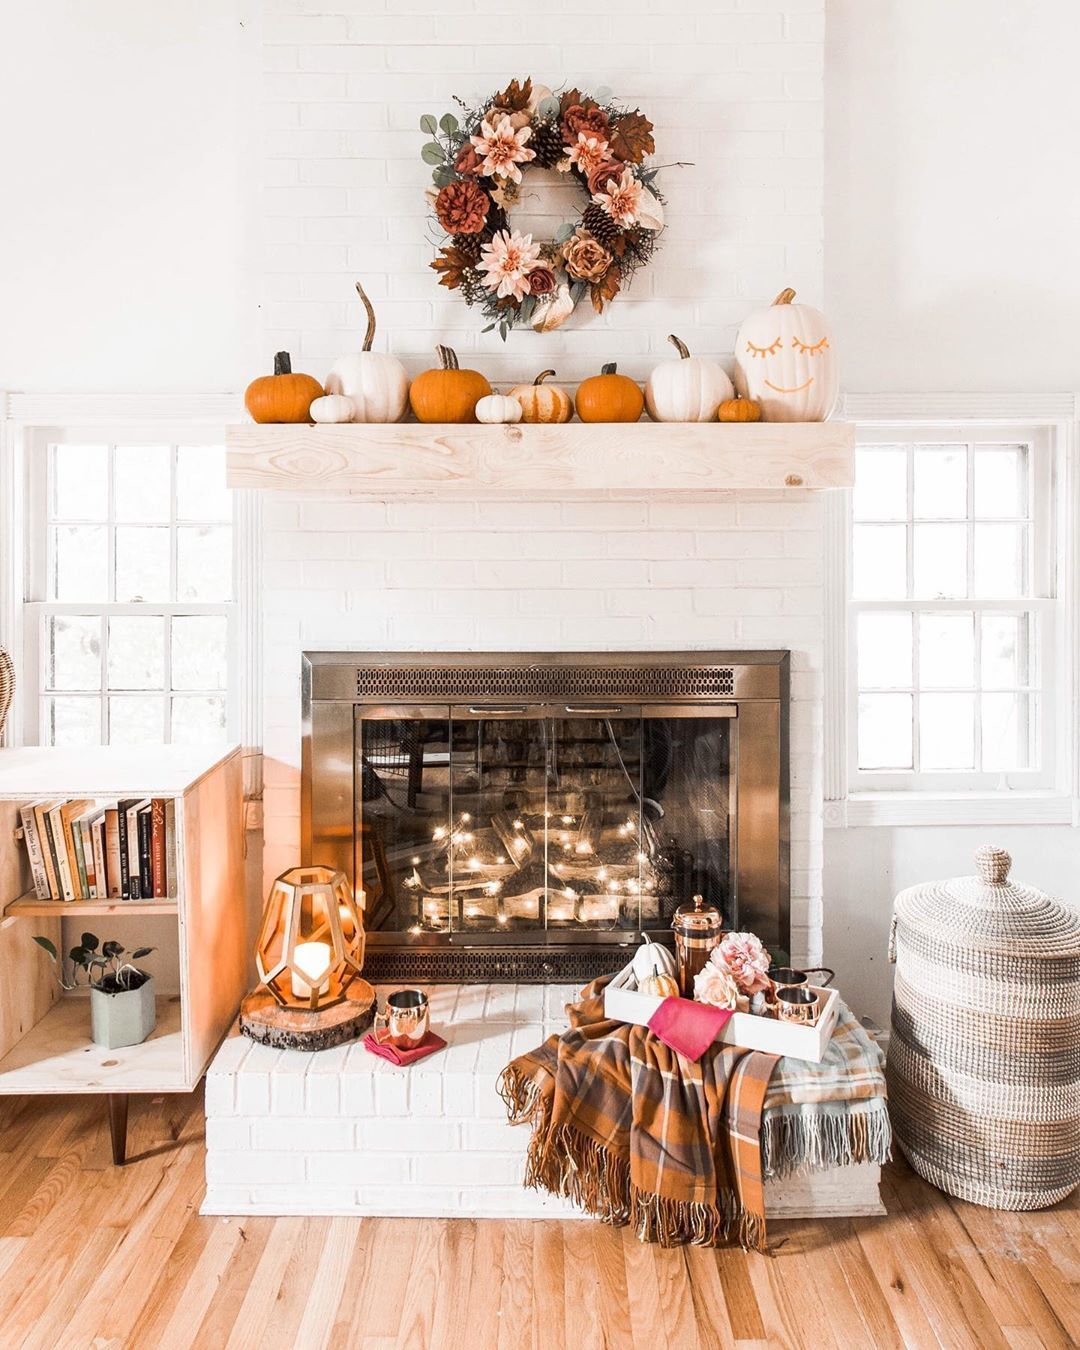 5 Fall Inspired Home Updates To Breathe New Life Into Your Space Inspired Homes Decor Home Decor Tips